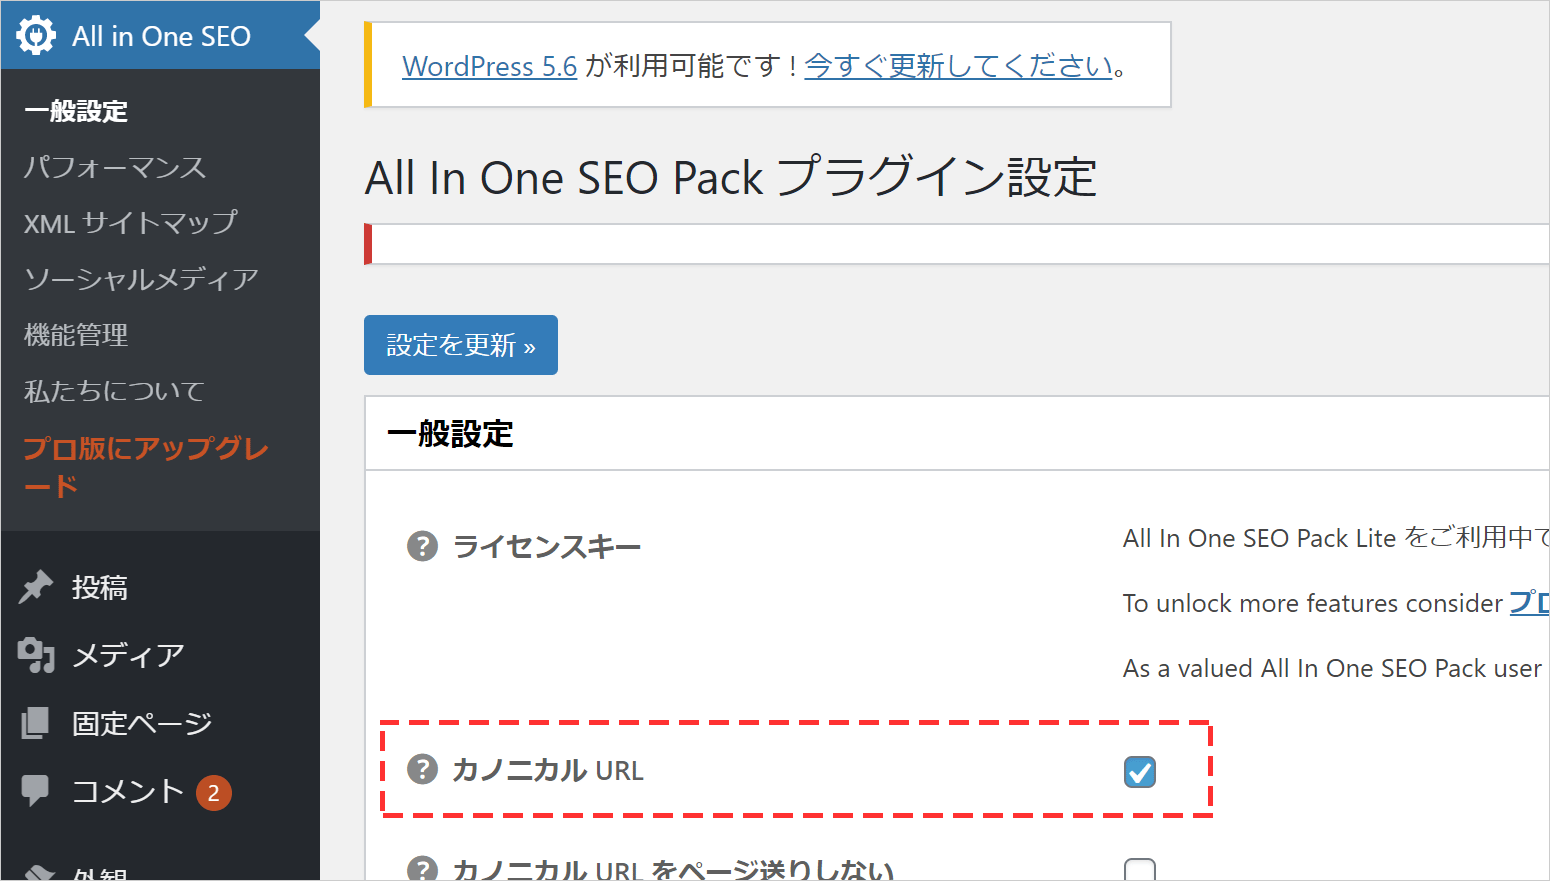 「All in One SEO Pack」でcanonicalタグを設定する